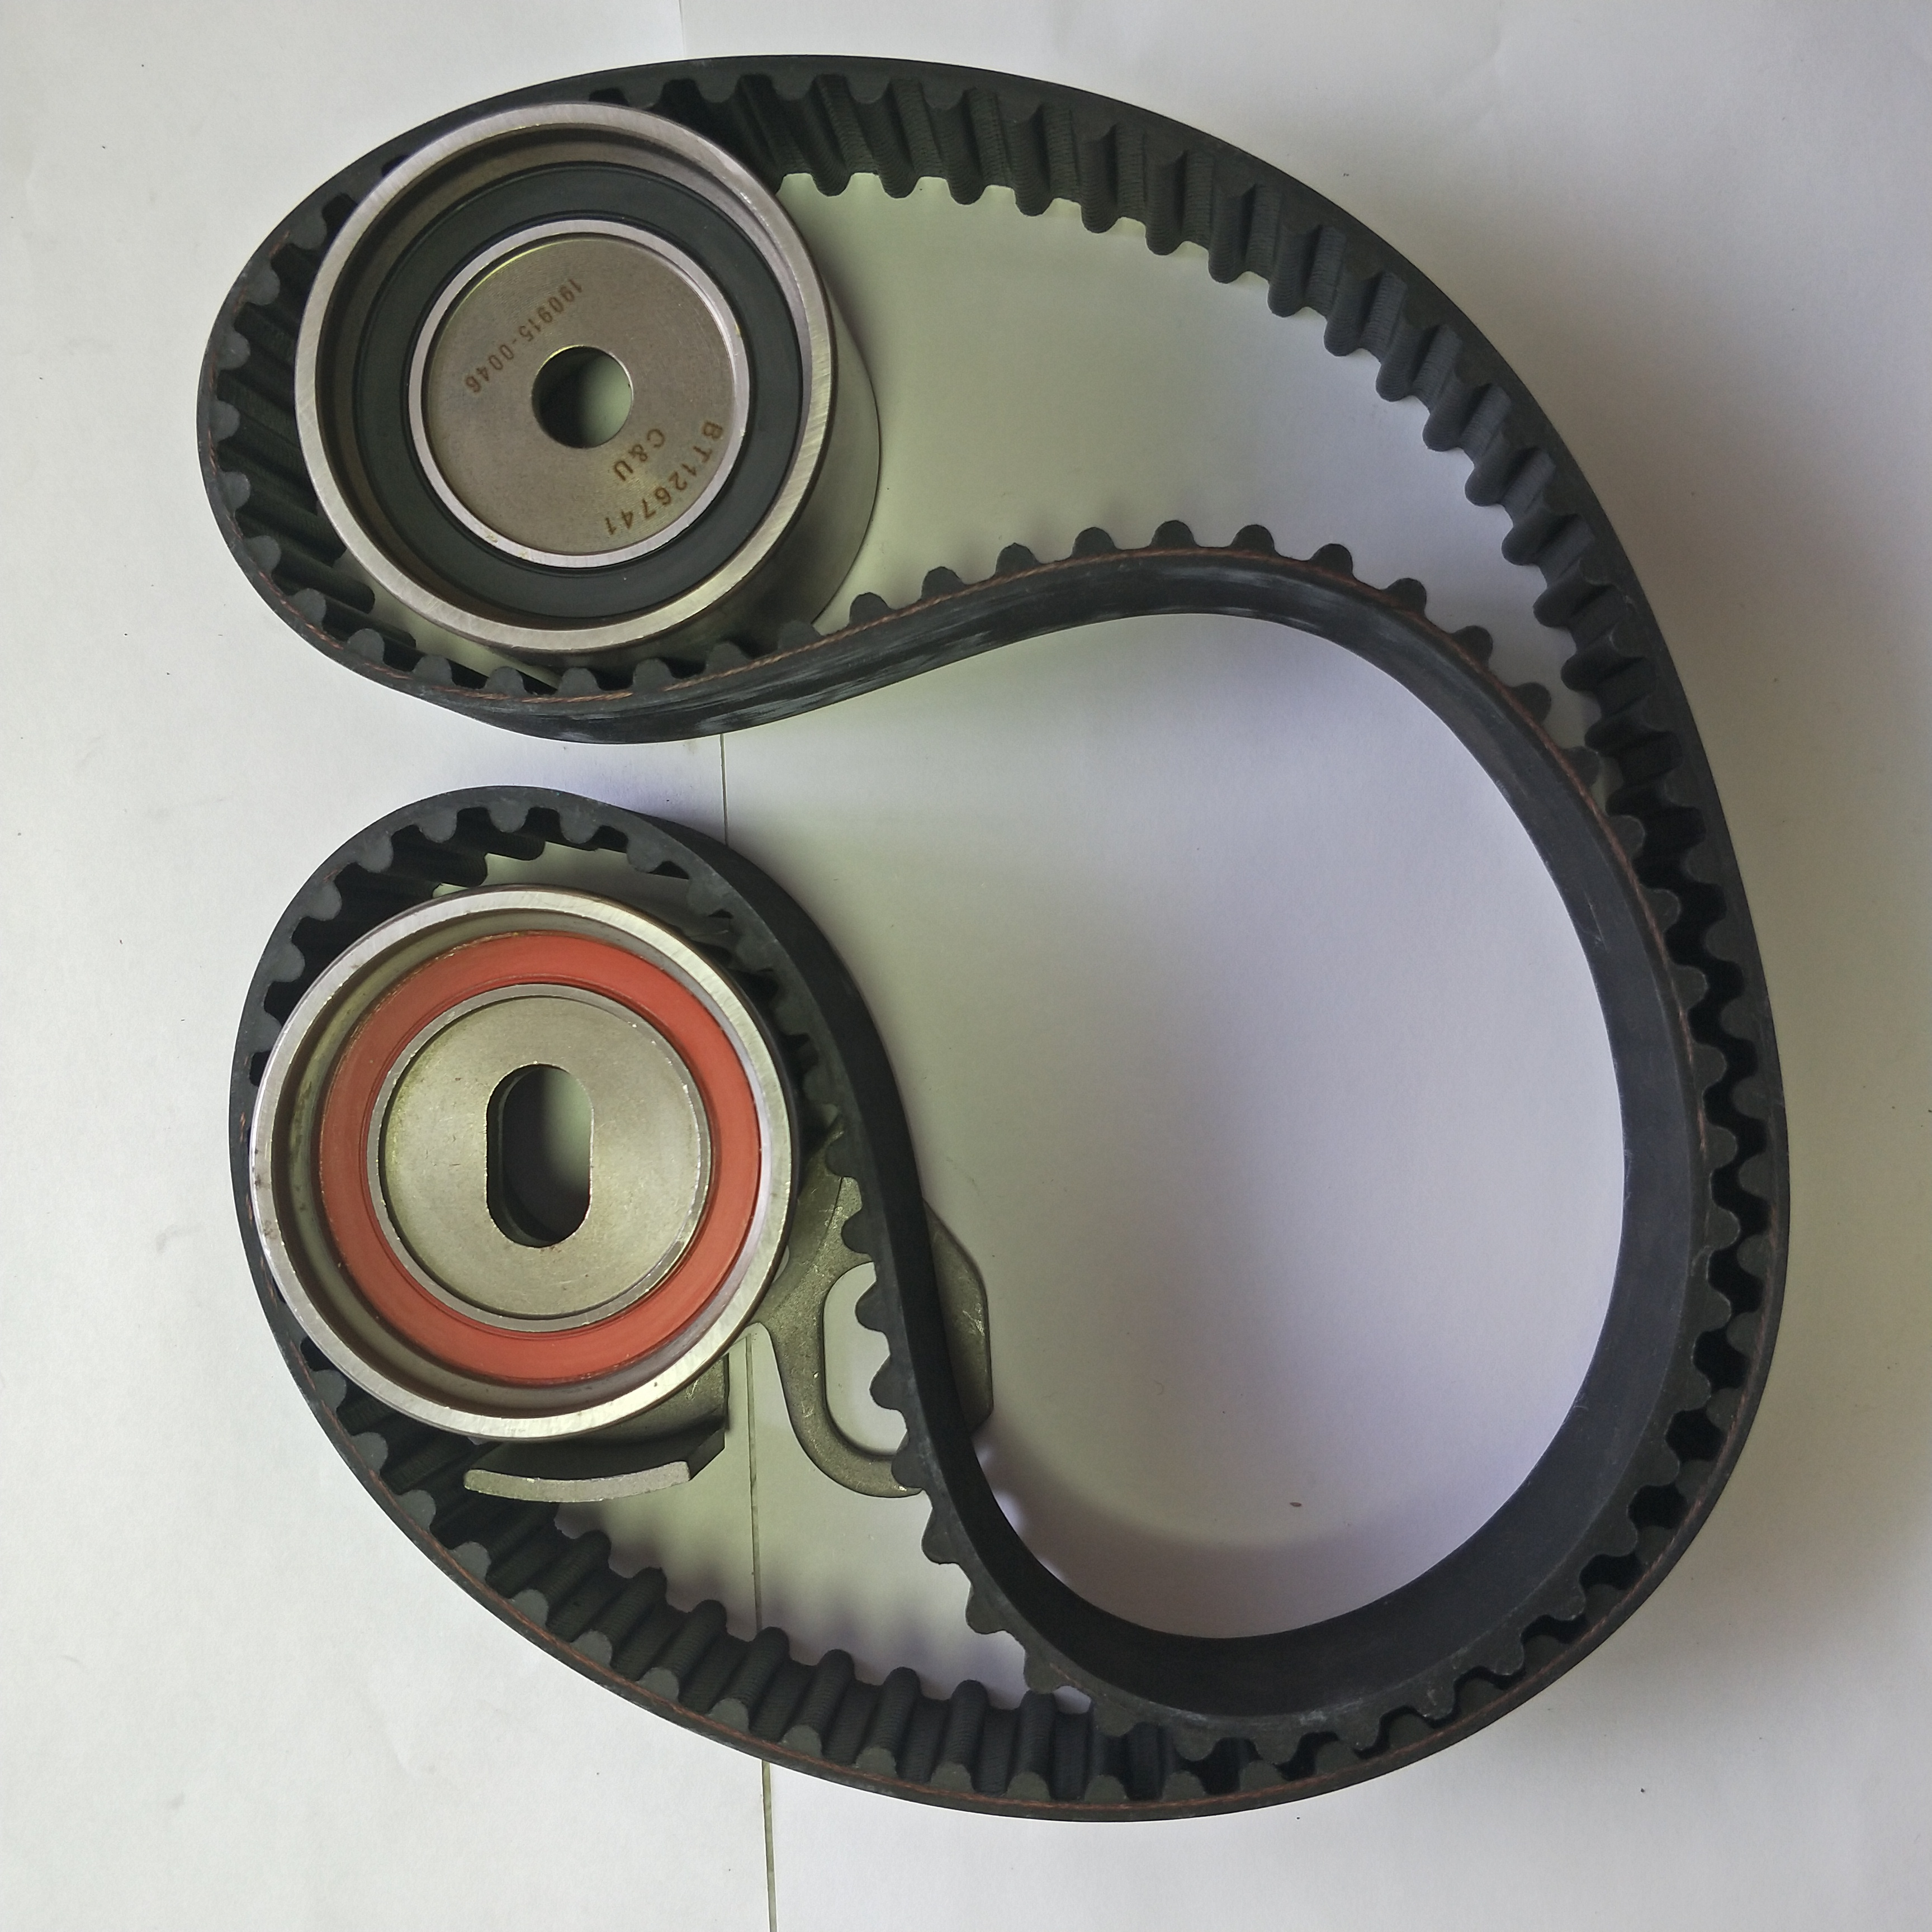 WEILL 1002250-E06 1006060-E06 1002250-E06 GREAT WALL HOVER CUV H3 H5 WINGLE 2.5TCI 2.8TC TIMING BEARINGS TIMING BELT(3 PIECES SA